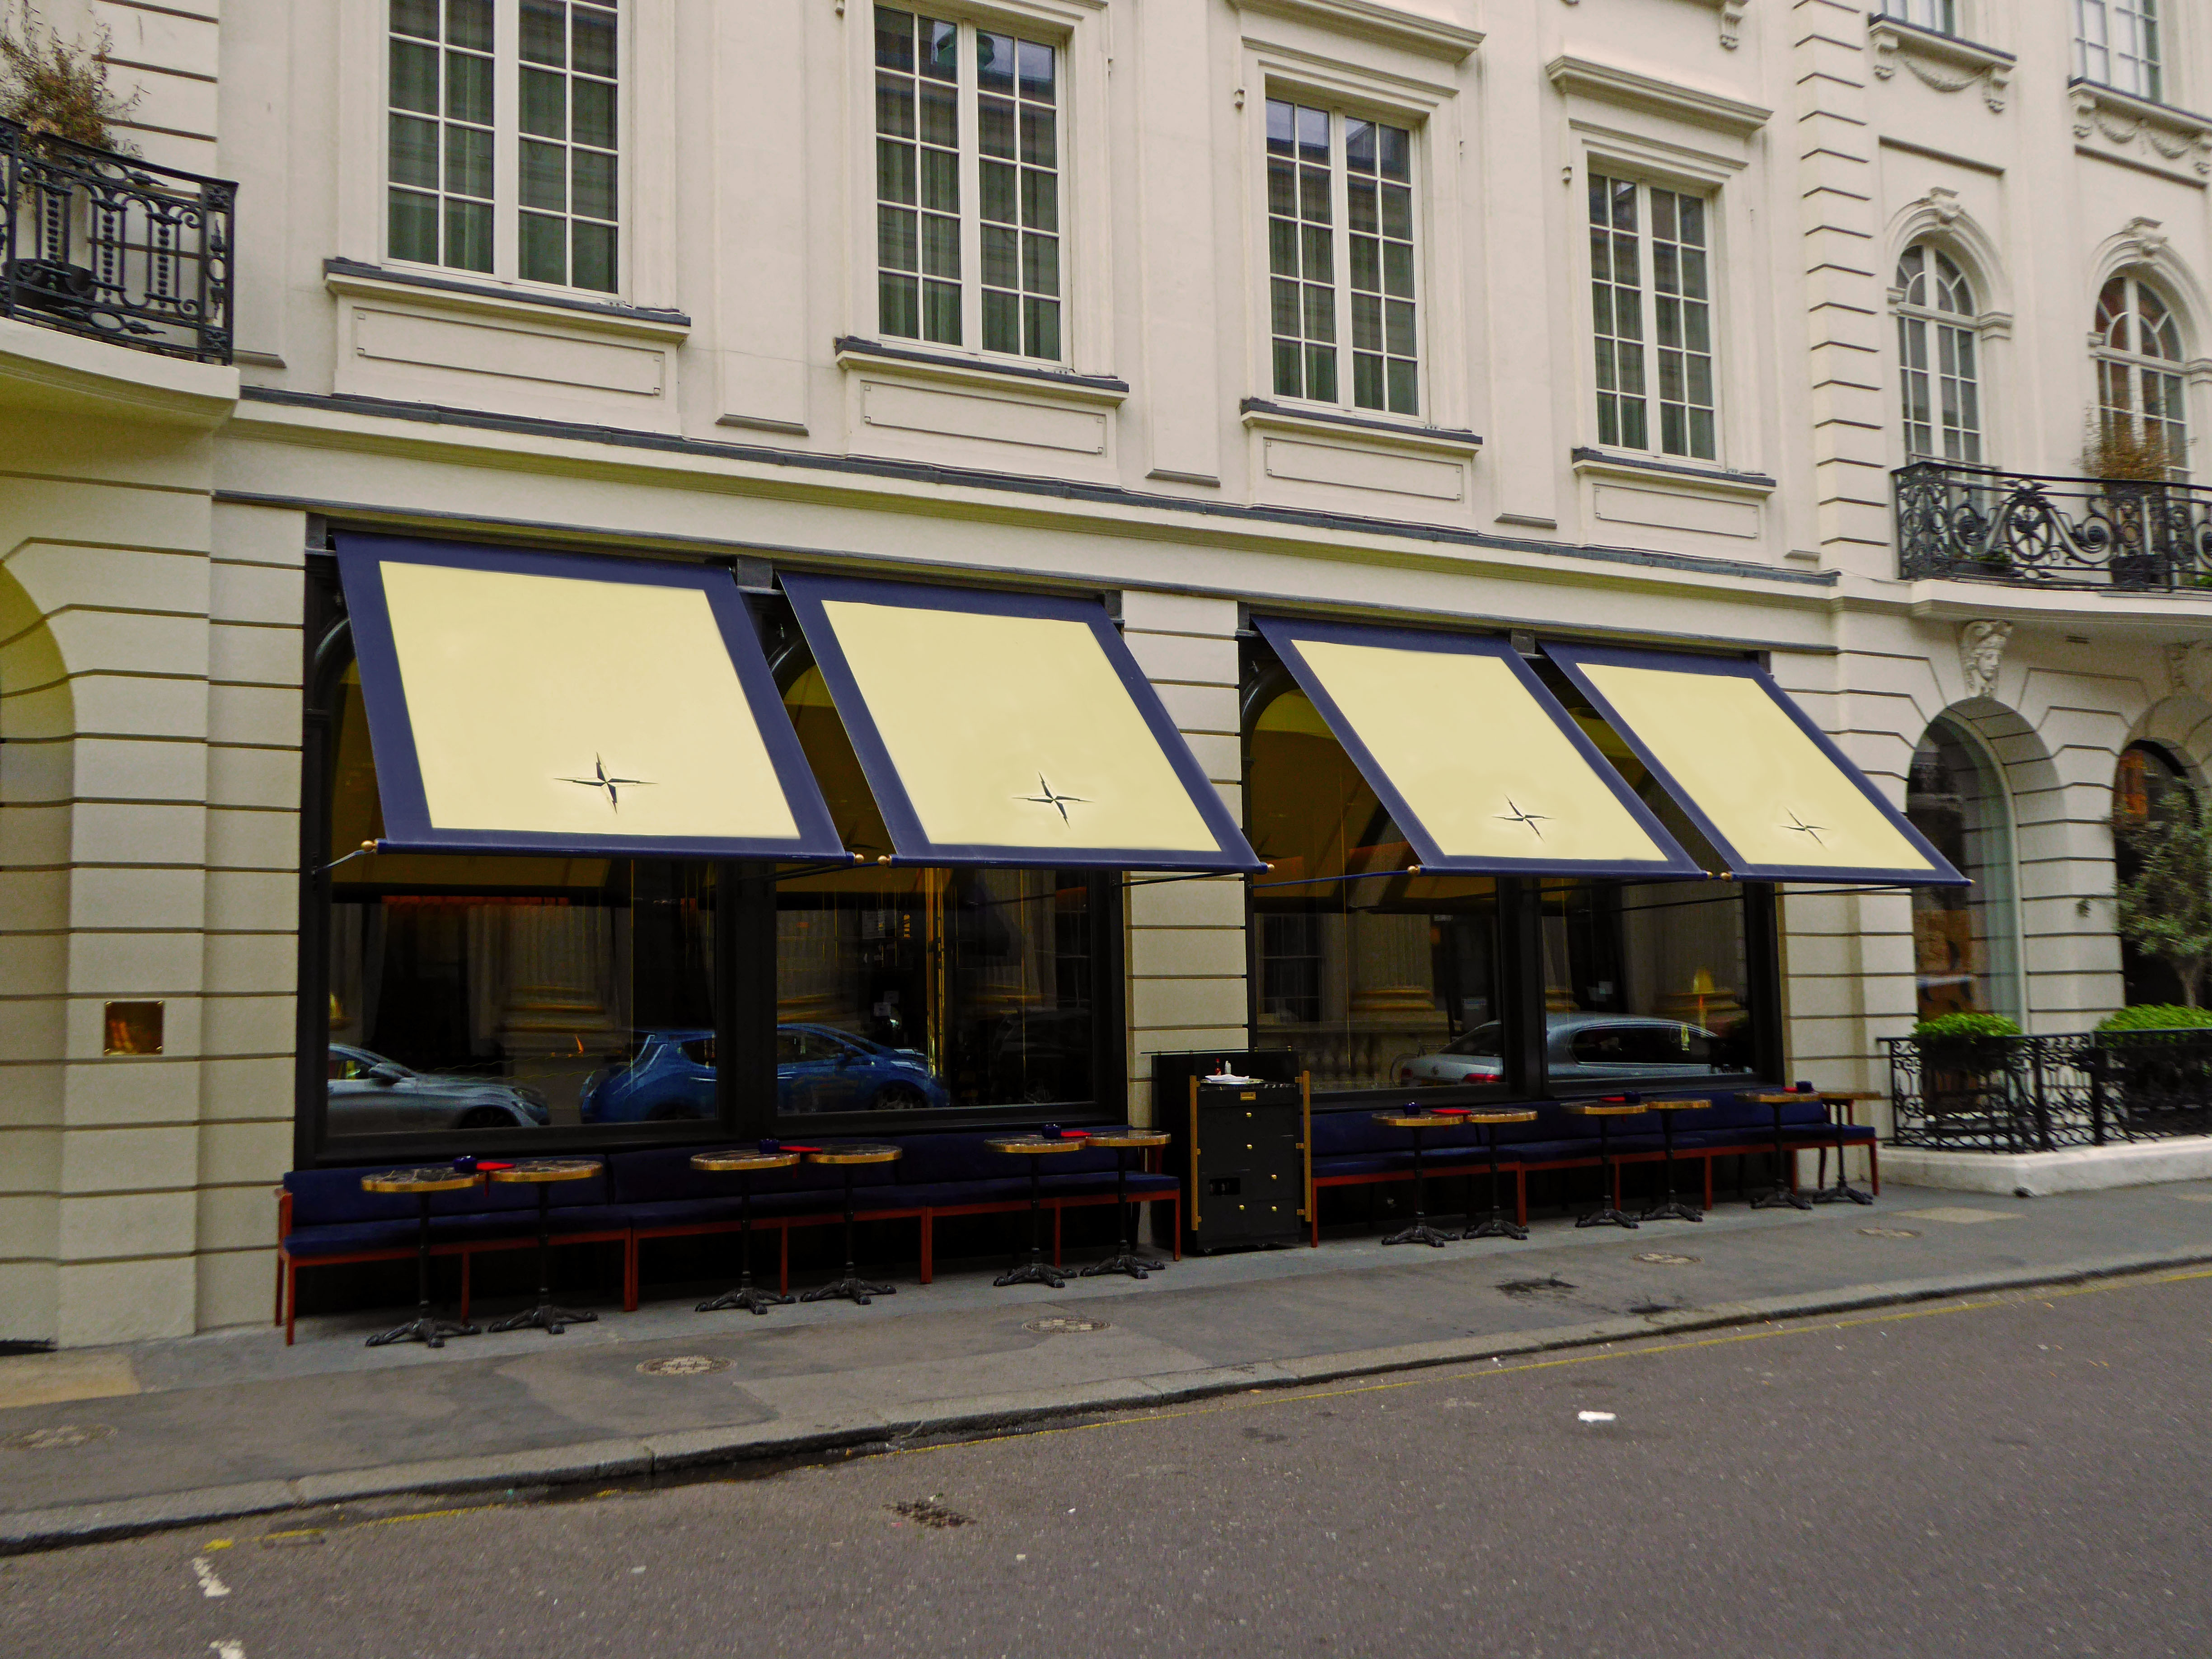 Isabel Greenwich awnings